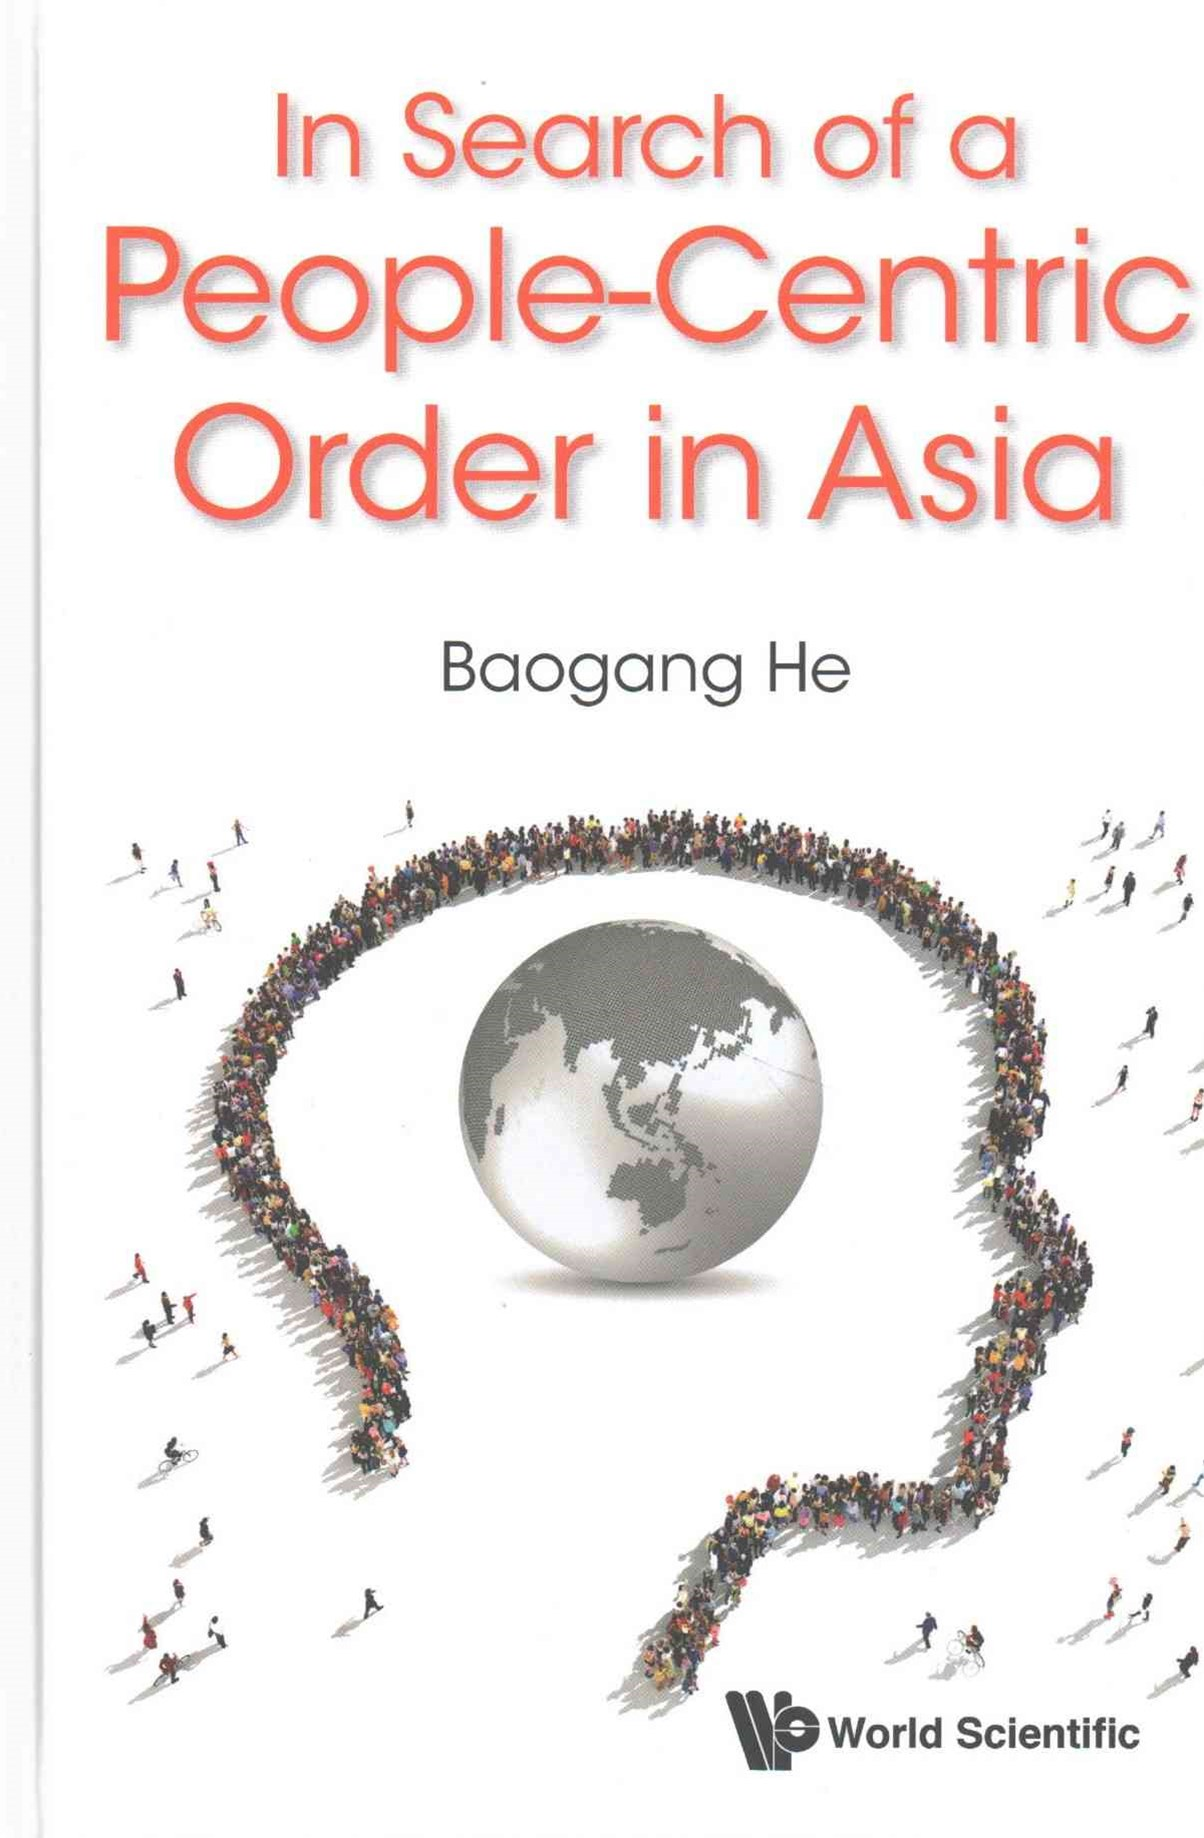 In Search of a People-Centric Order in Asia